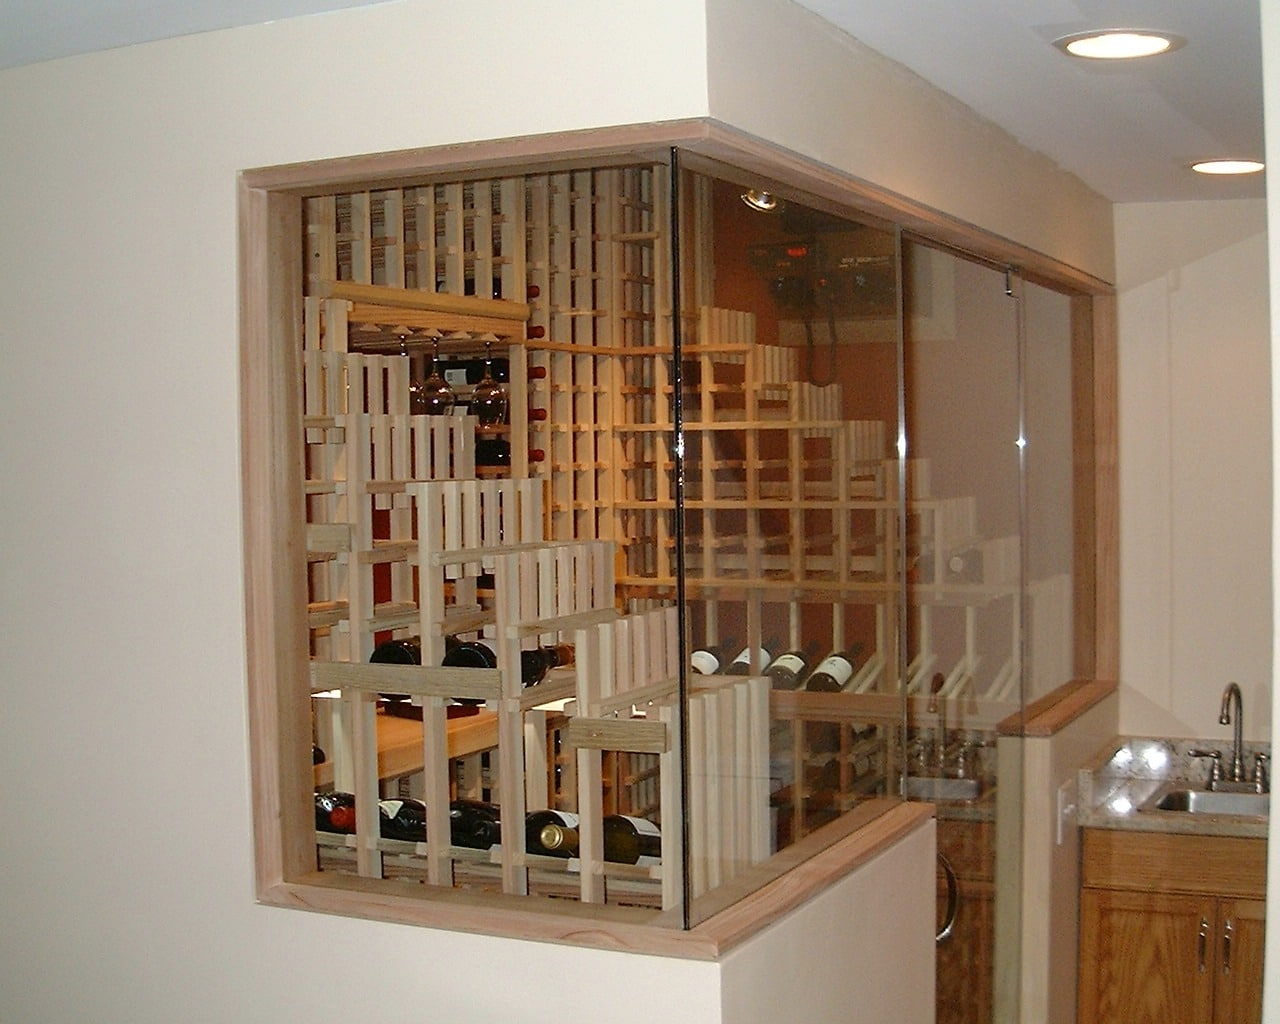 Home Wine Cellar Cooling Project WhisperKOOL Self-Contained System & SELF-CONTAINED (Through-the-wall) **Wine Cellar Cooling Units**